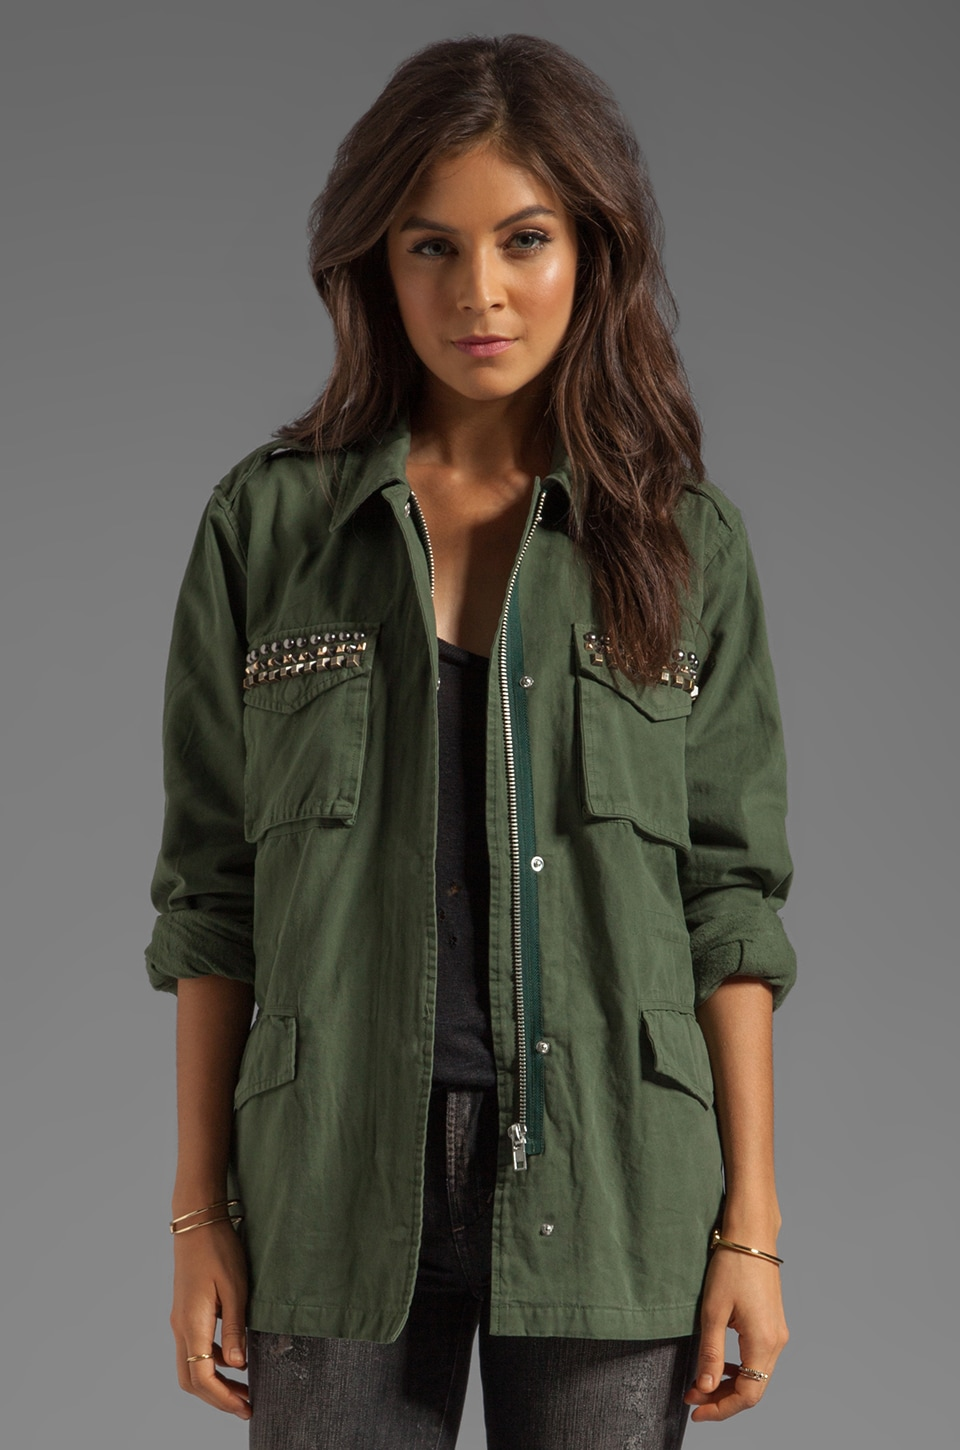 BB Dakota Tawny Stud Trim Army Jacket in Army Green